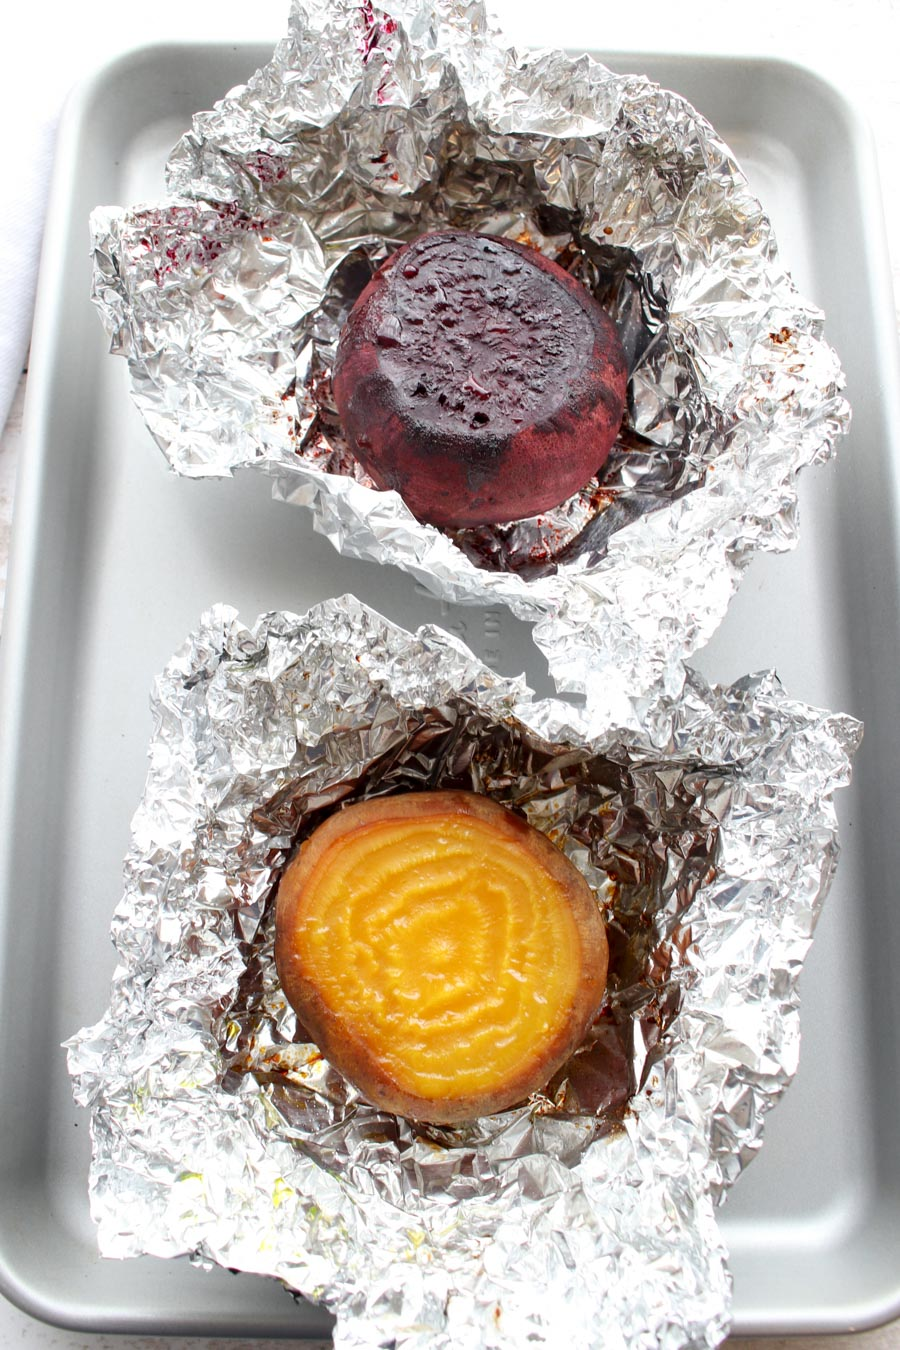 1 roasted red beet and 1 roasted yellow beet